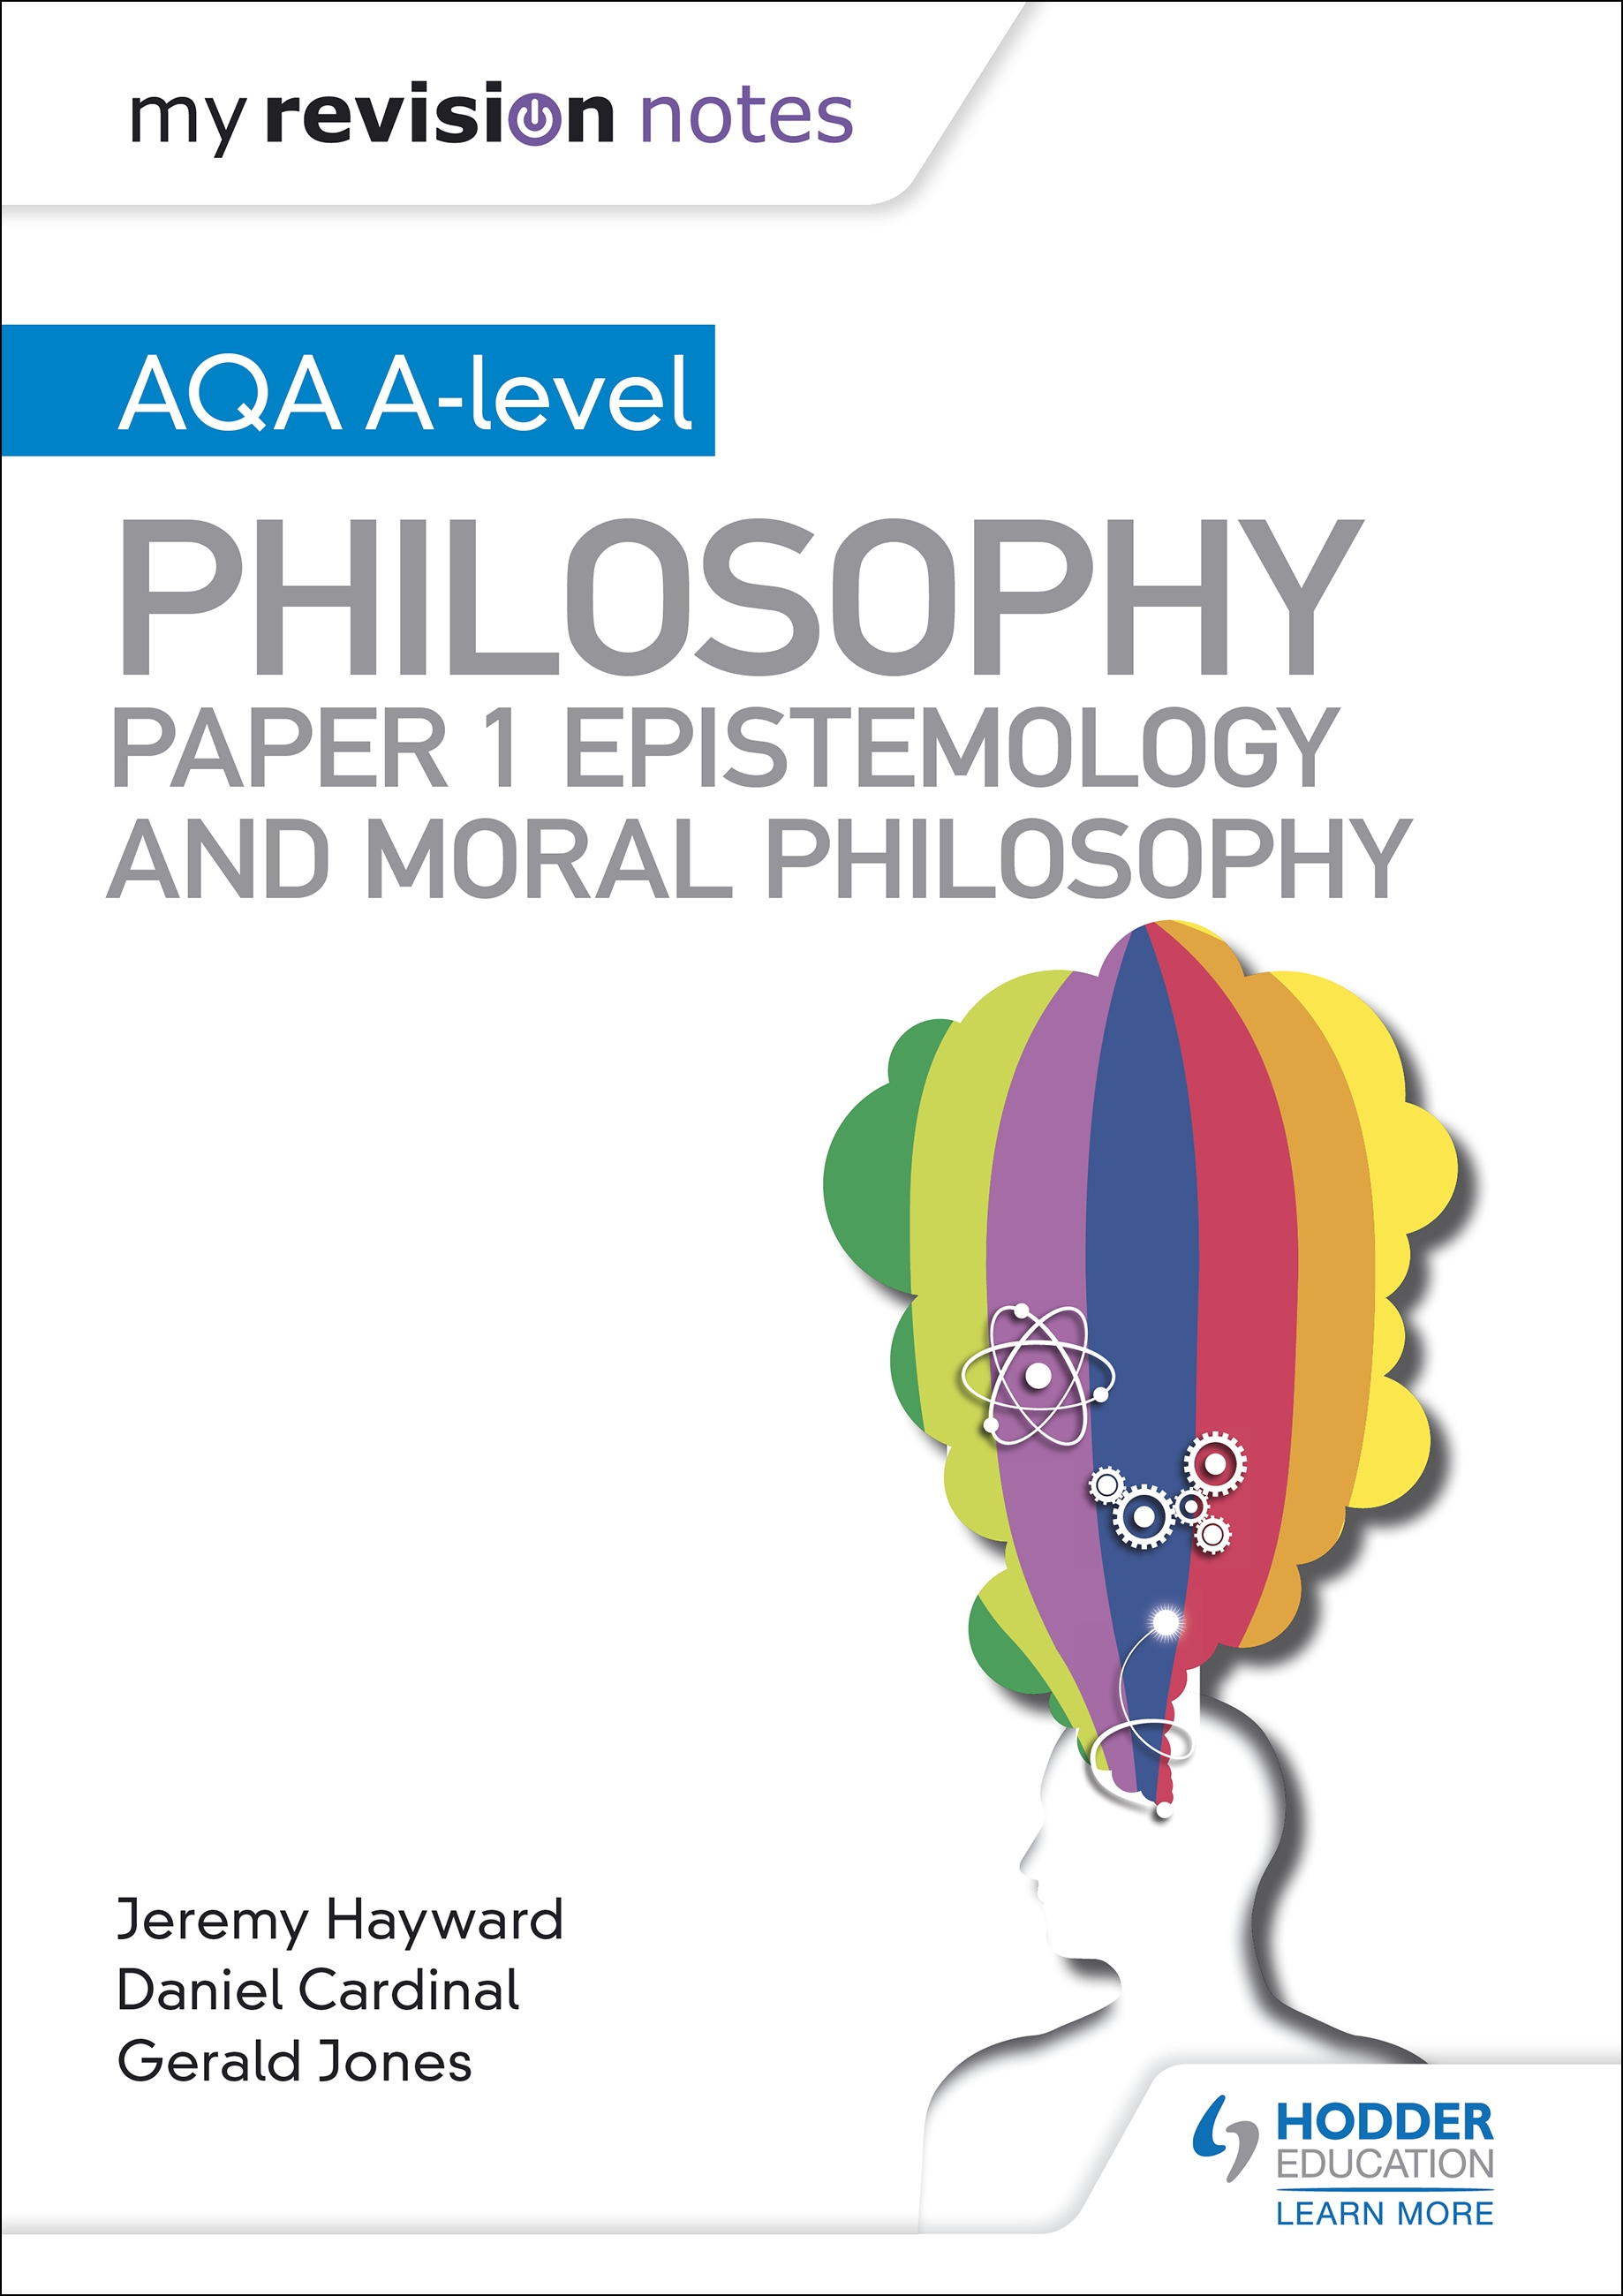 My Revision Notes: AQA A-level Philosophy Paper 1 Epistemology and Moral Philosophy